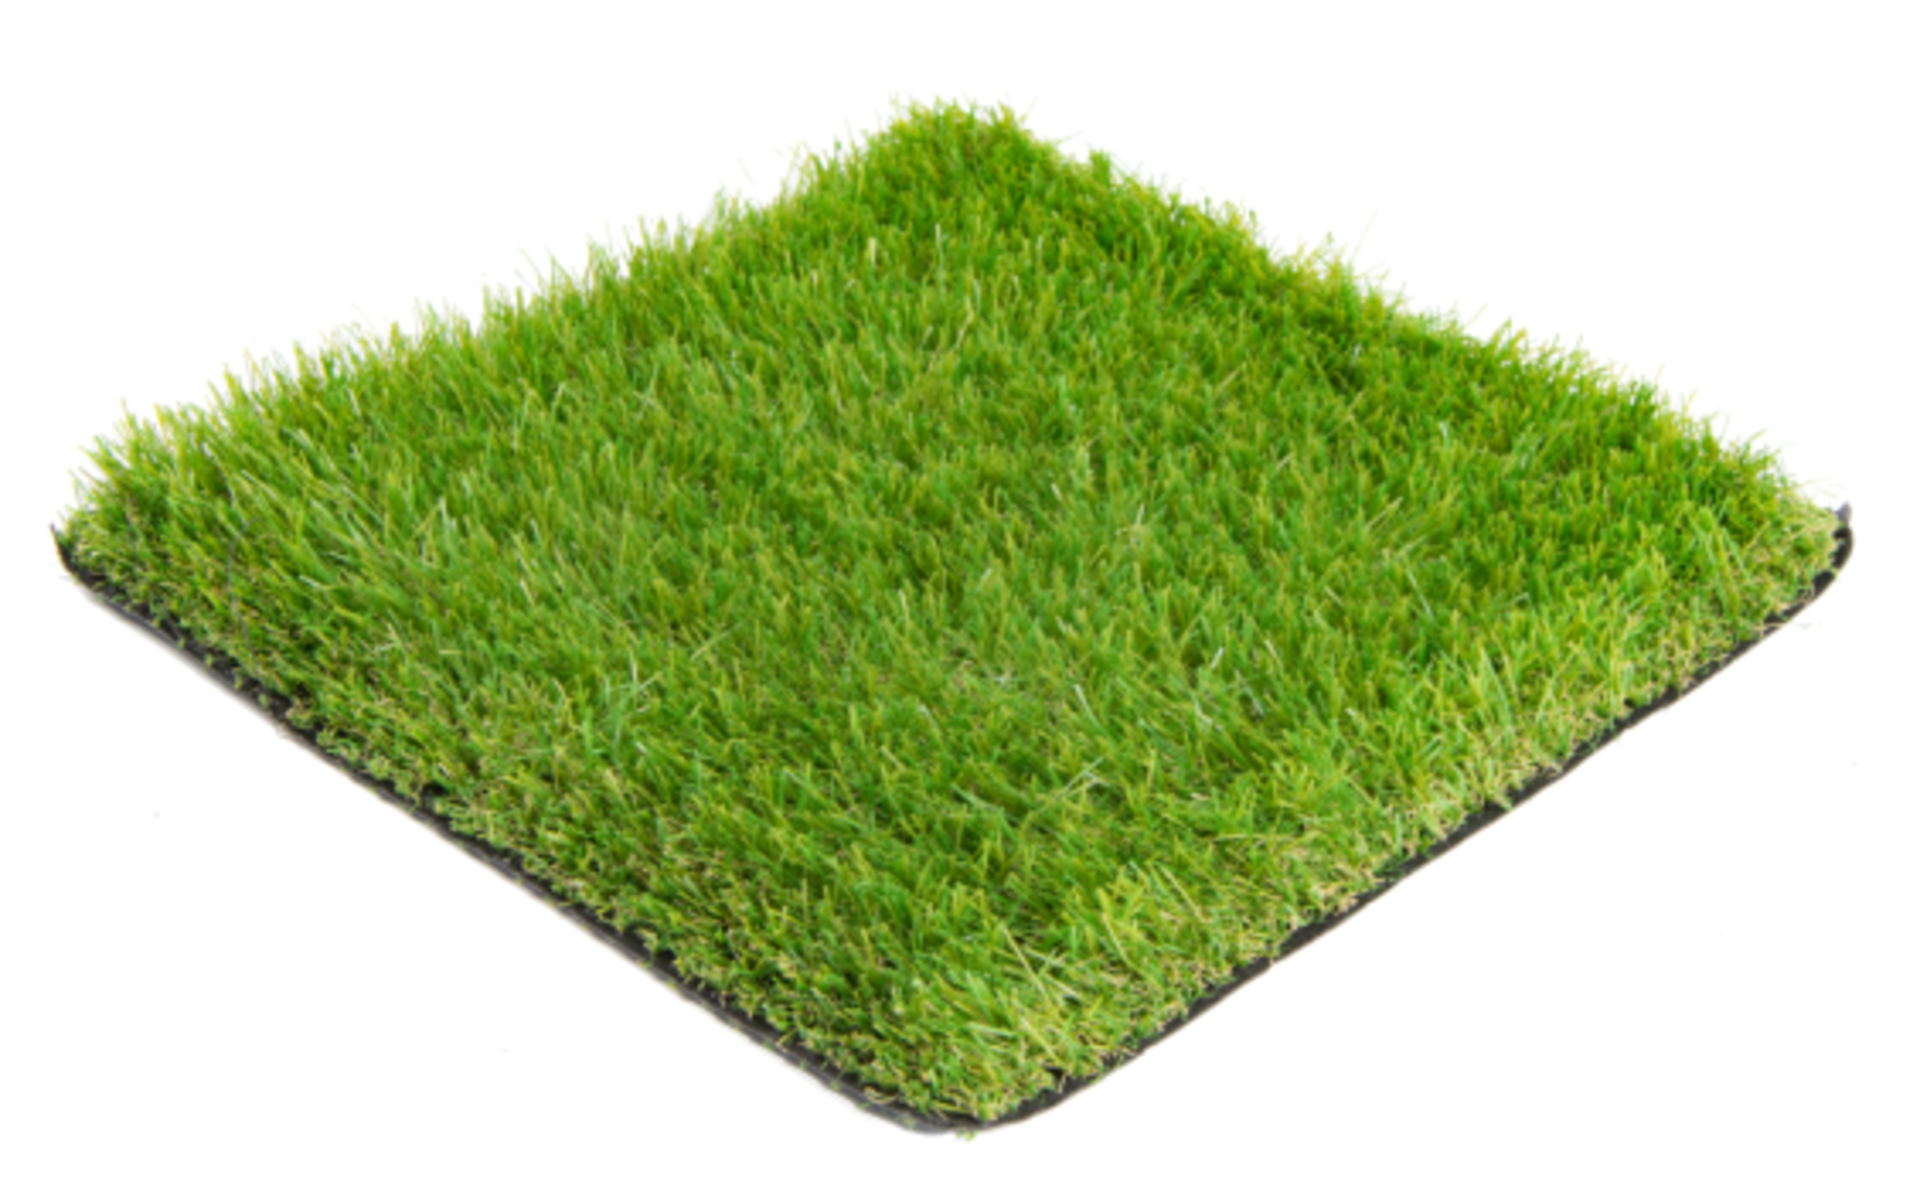 Lot 43 - A Full Roll of Natural 35 Artificial Grass, 25 meters x 4 meters